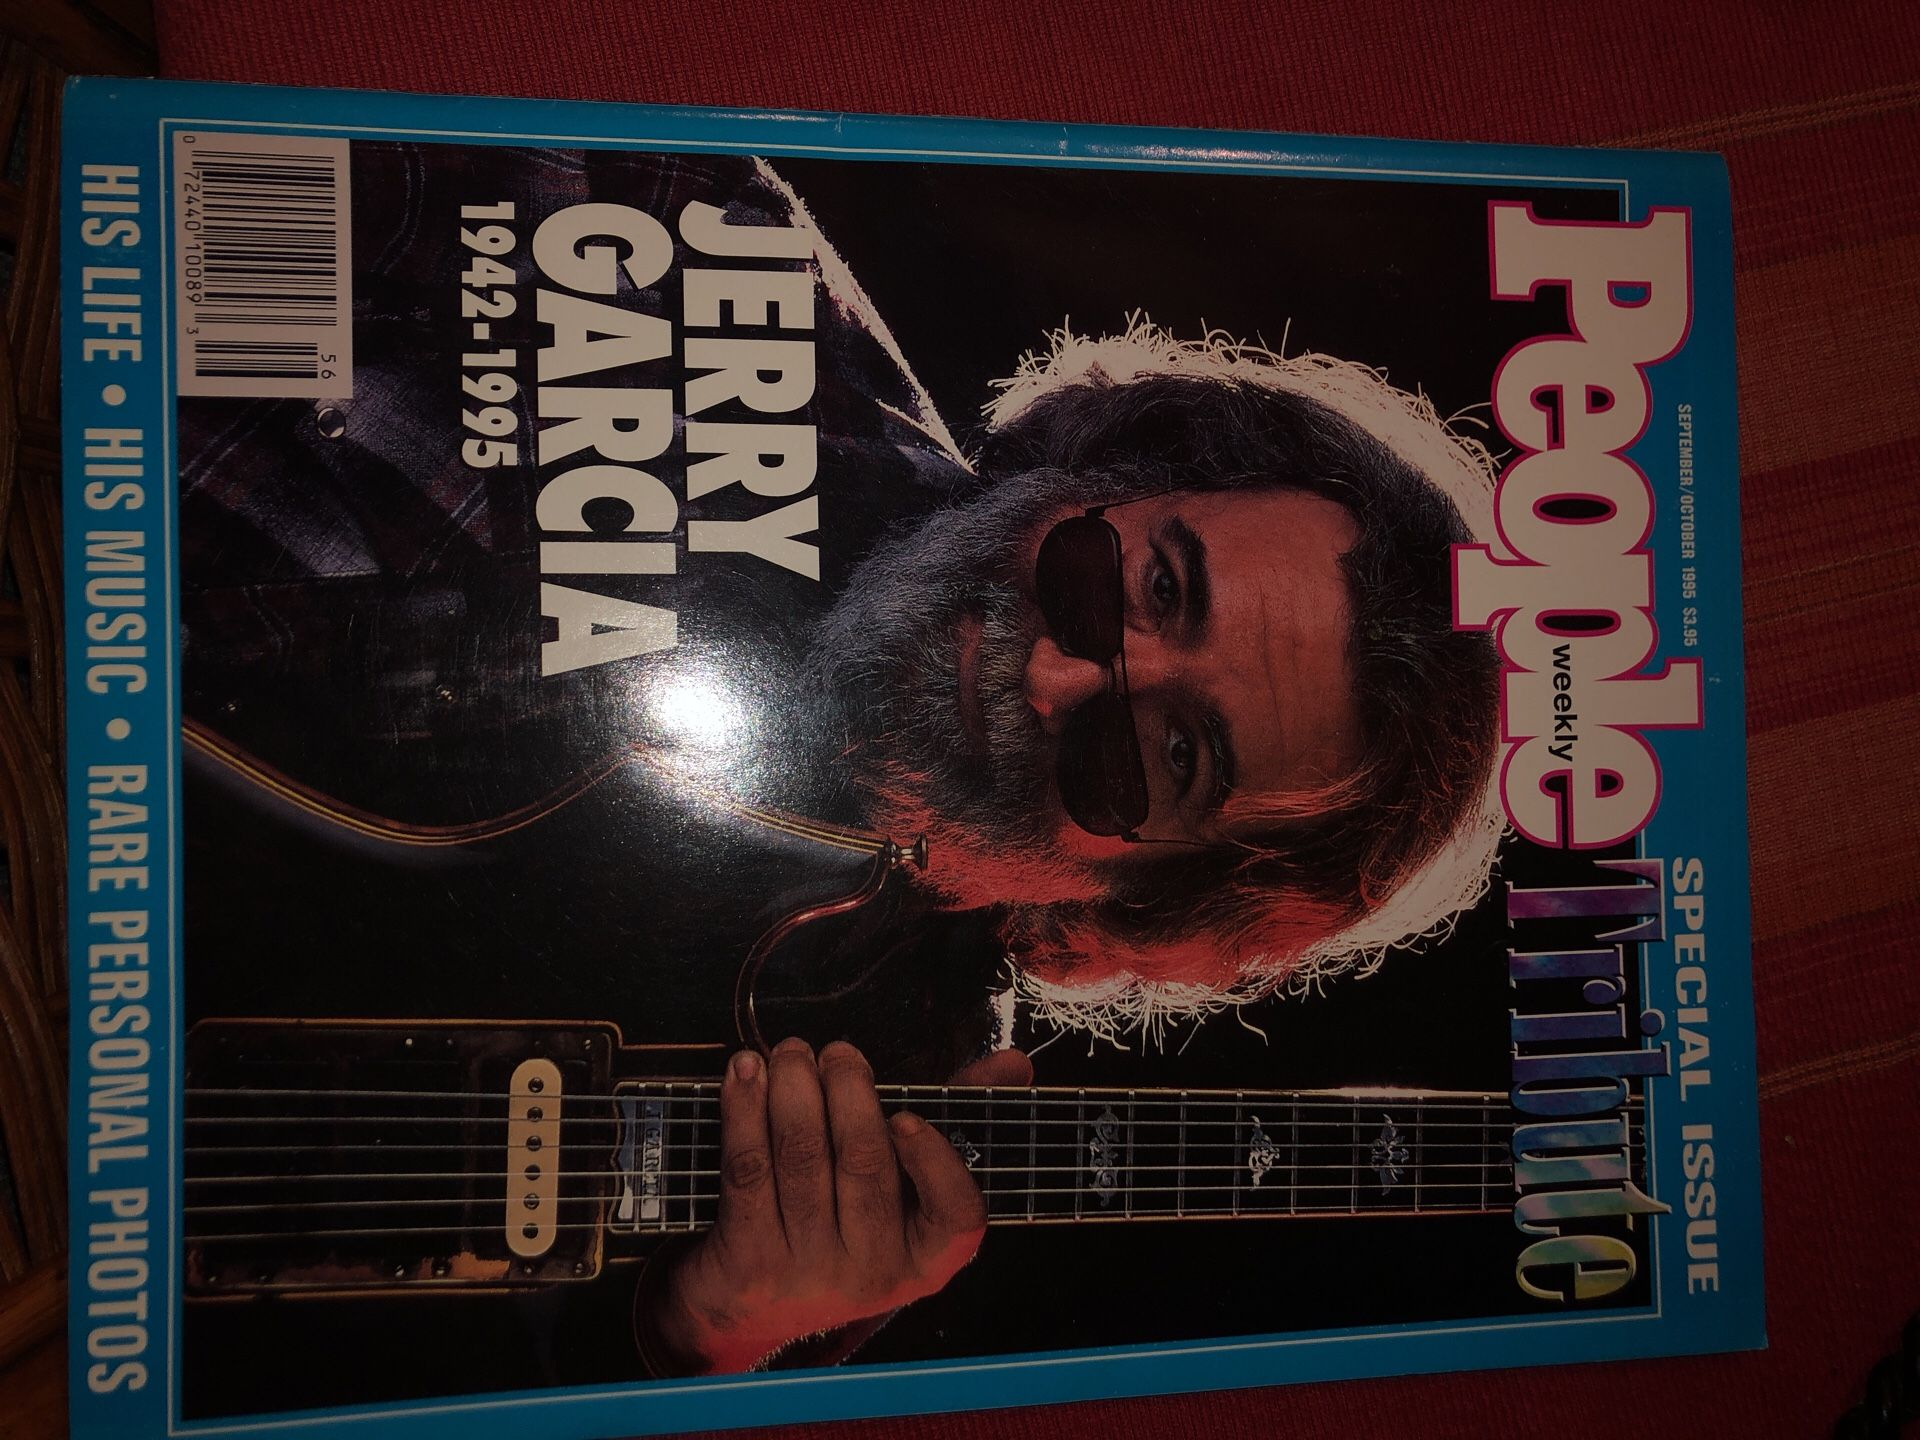 Brand new peoples magazine of jerry Garcia collection for 20$ brand new and worth a lot